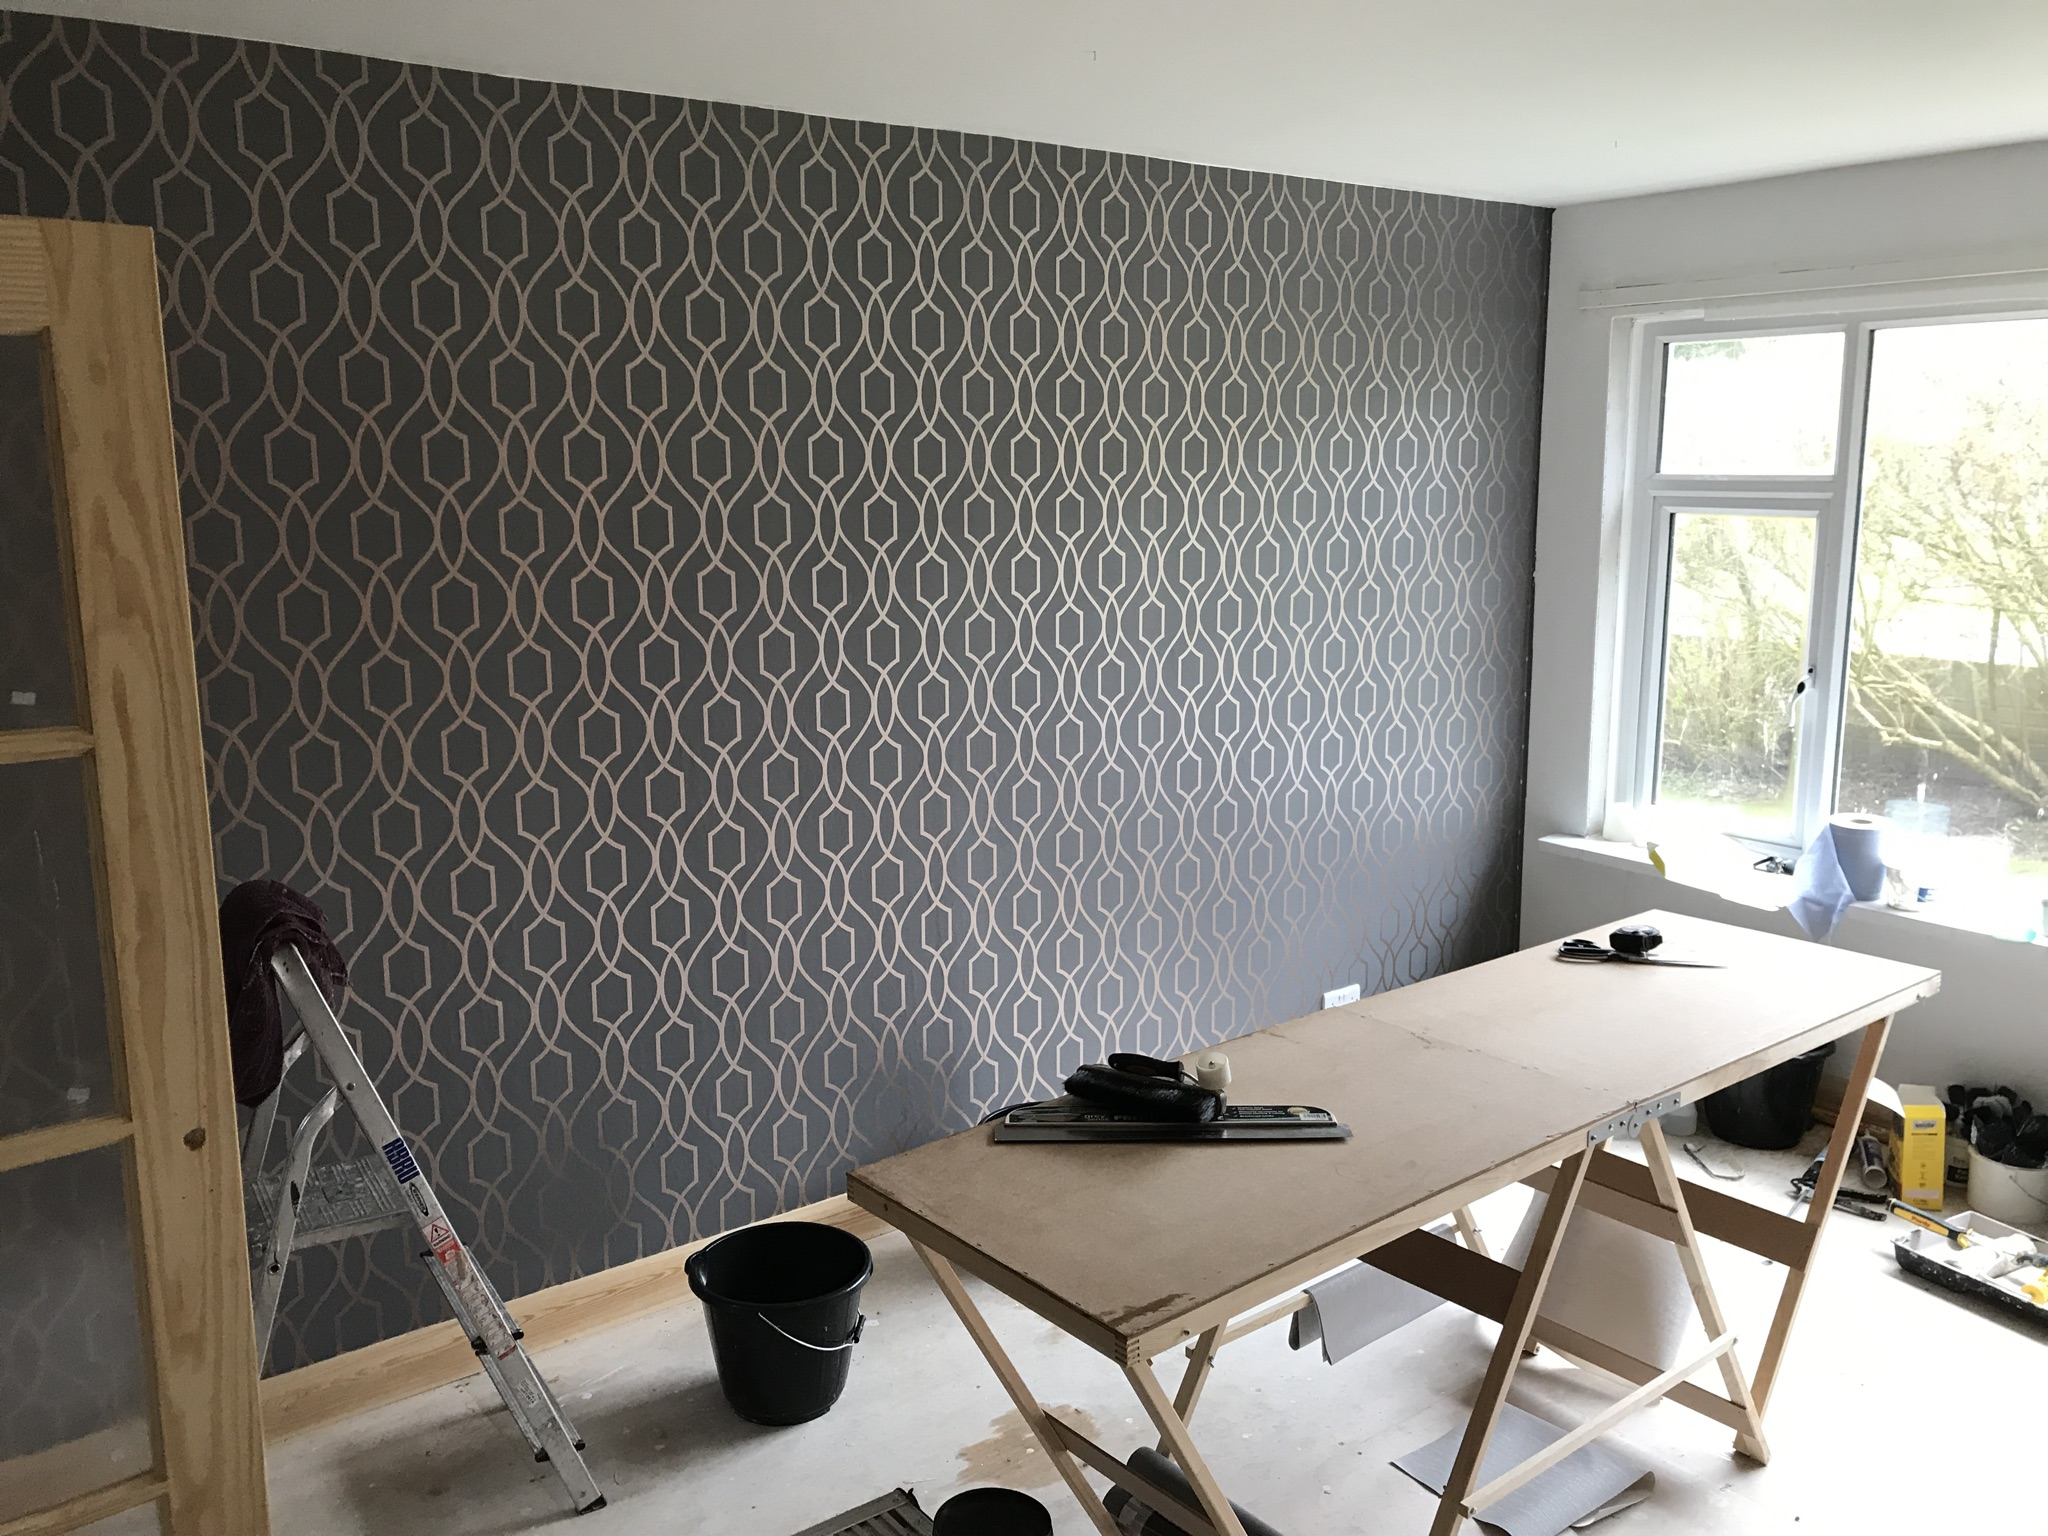 Wallpapering & Painting 2018